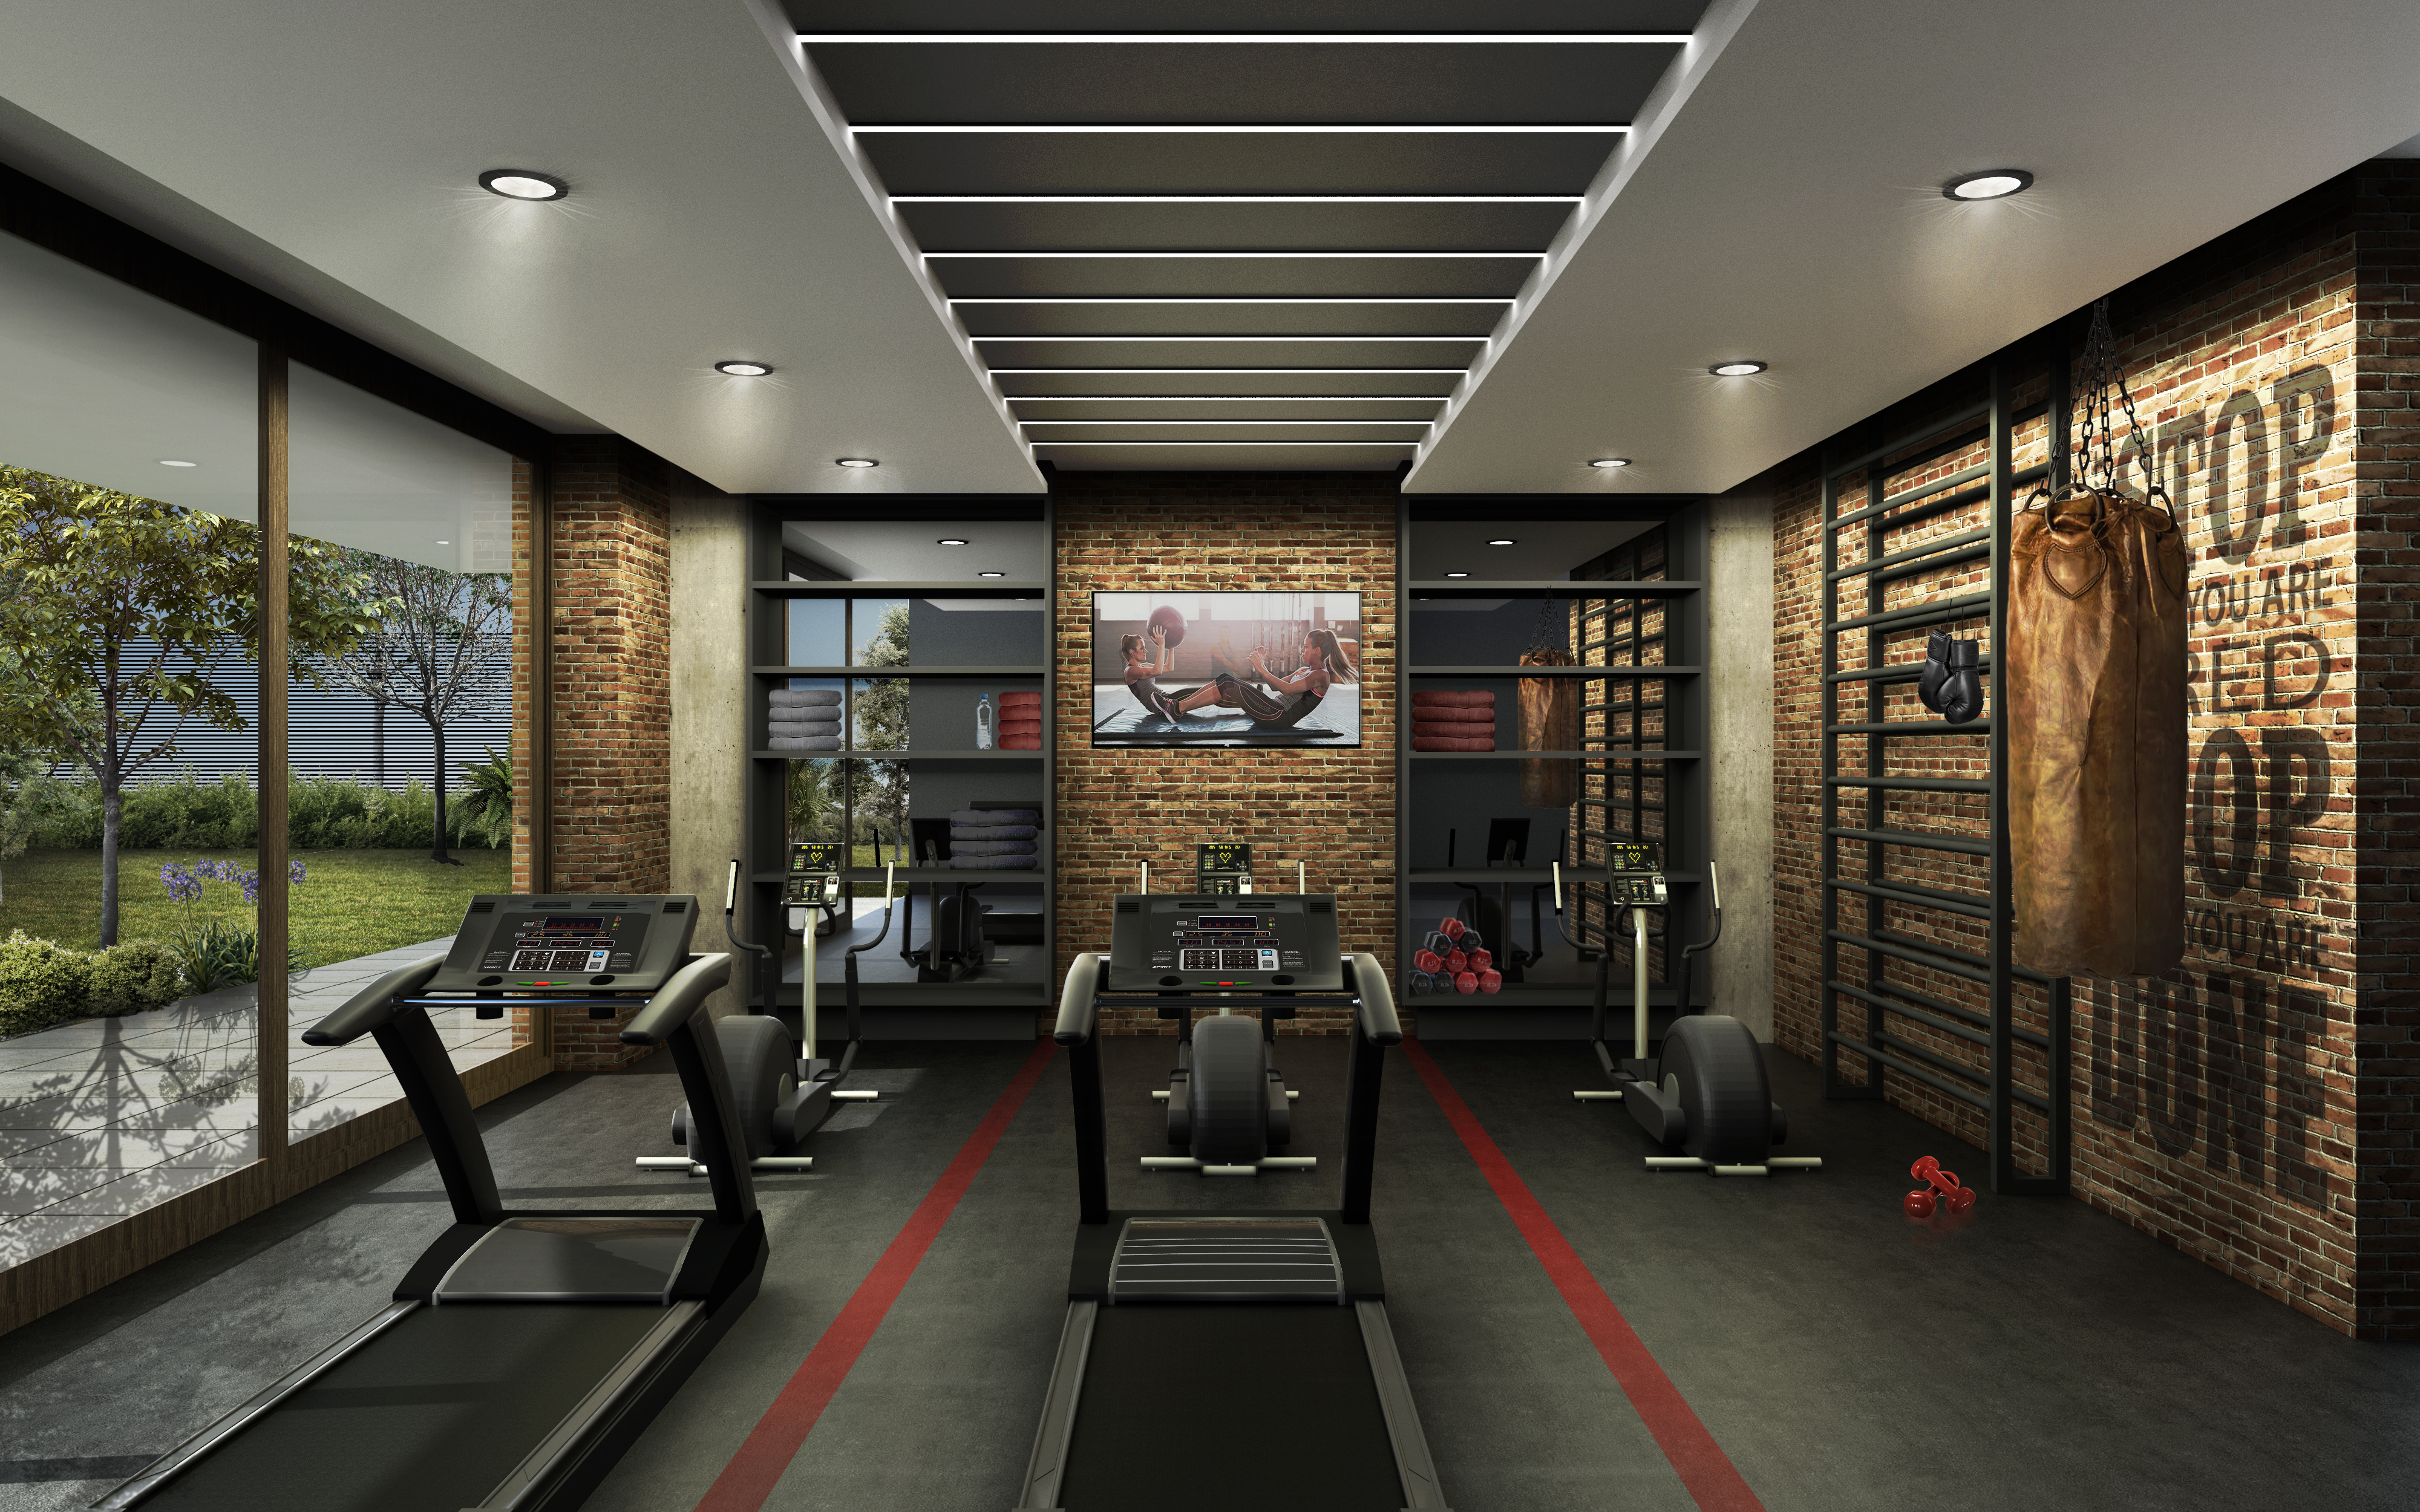 Fit & Health Zone